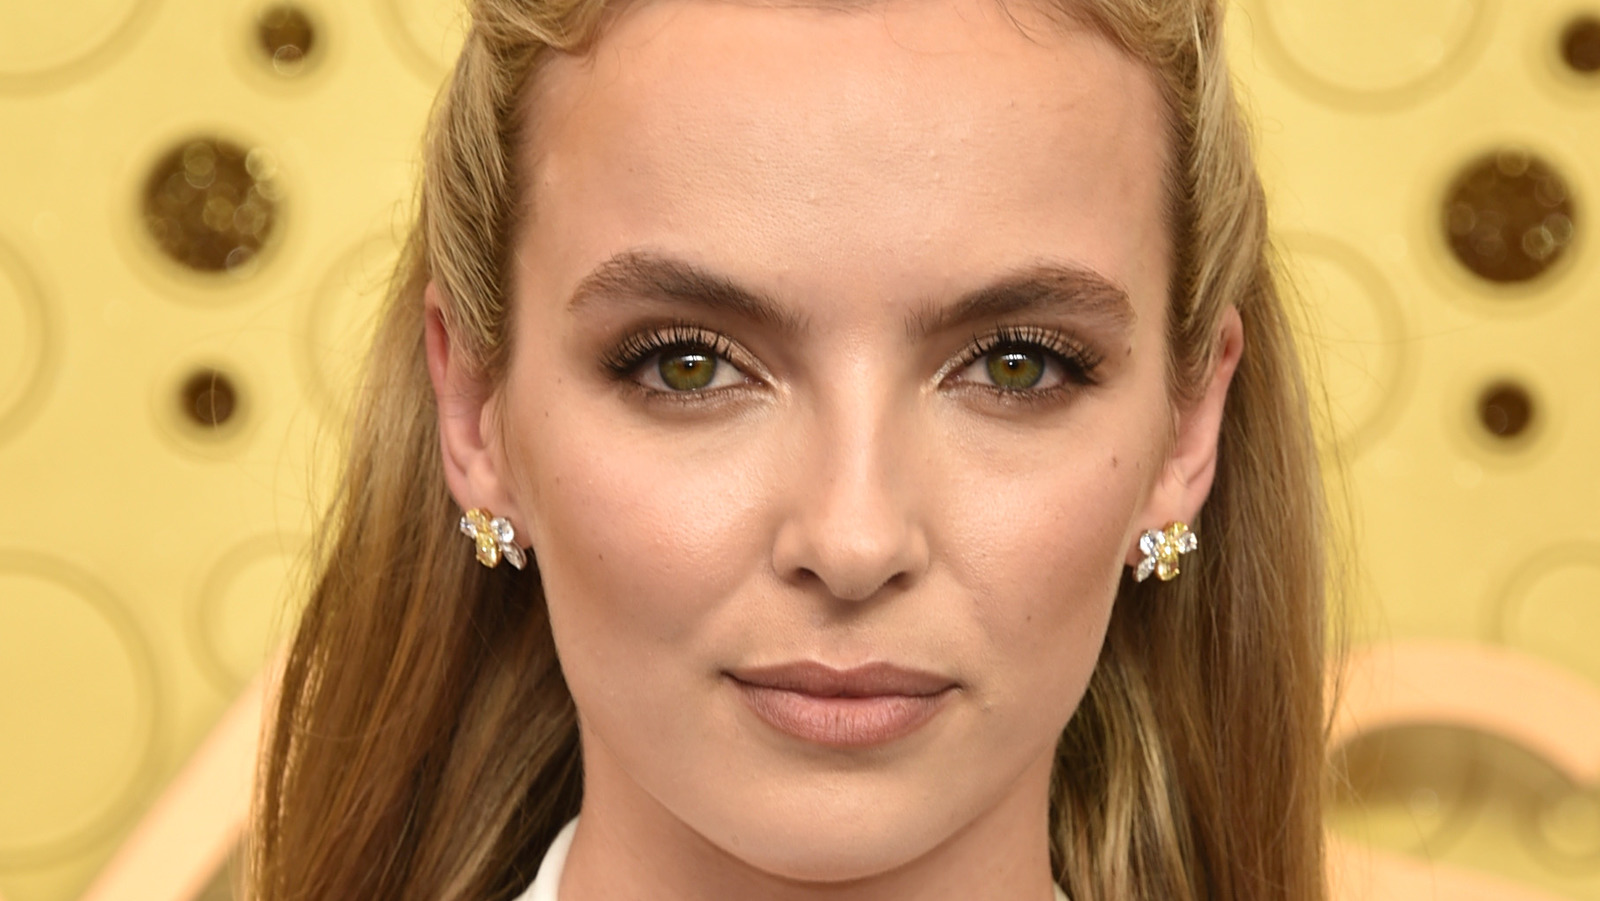 Jodie Comer's Net Worth: How Much Does The Killing Eve Star Make?